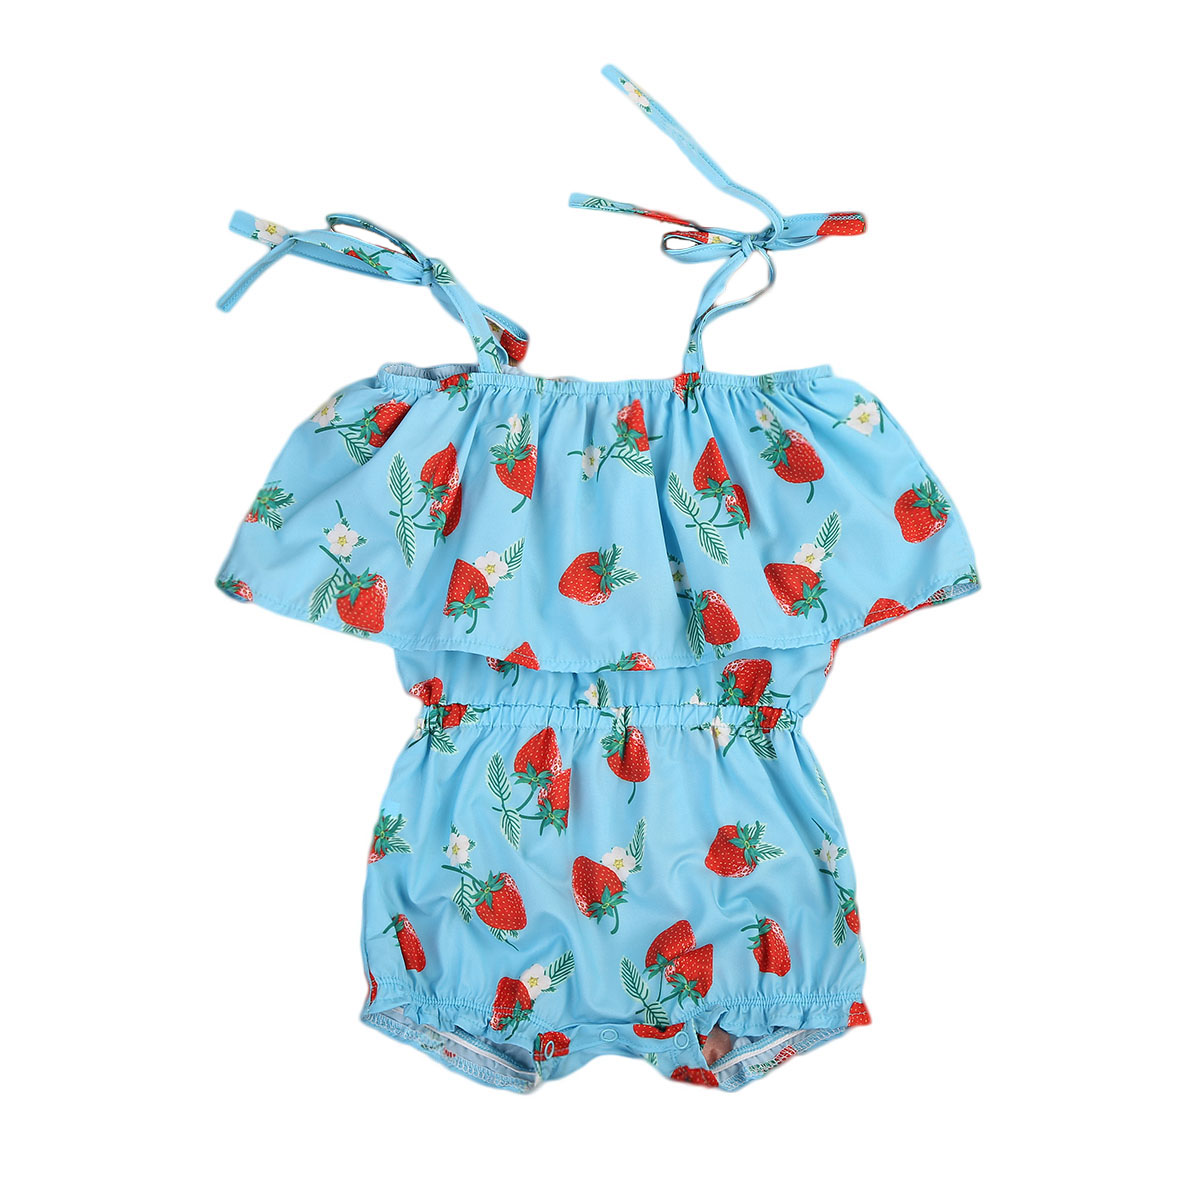 Pudcoco Newborn Baby Girls Strawberry Romper Strap Off Shlouder Ruffle Jumpsuit Outfits Sunsuit Summer Kids Clothes One-Piece cute newborn baby girl romper 2017 summer ruffles polka dot princess kids jumpsuit headband 2pcs outfits sunsuit clothes